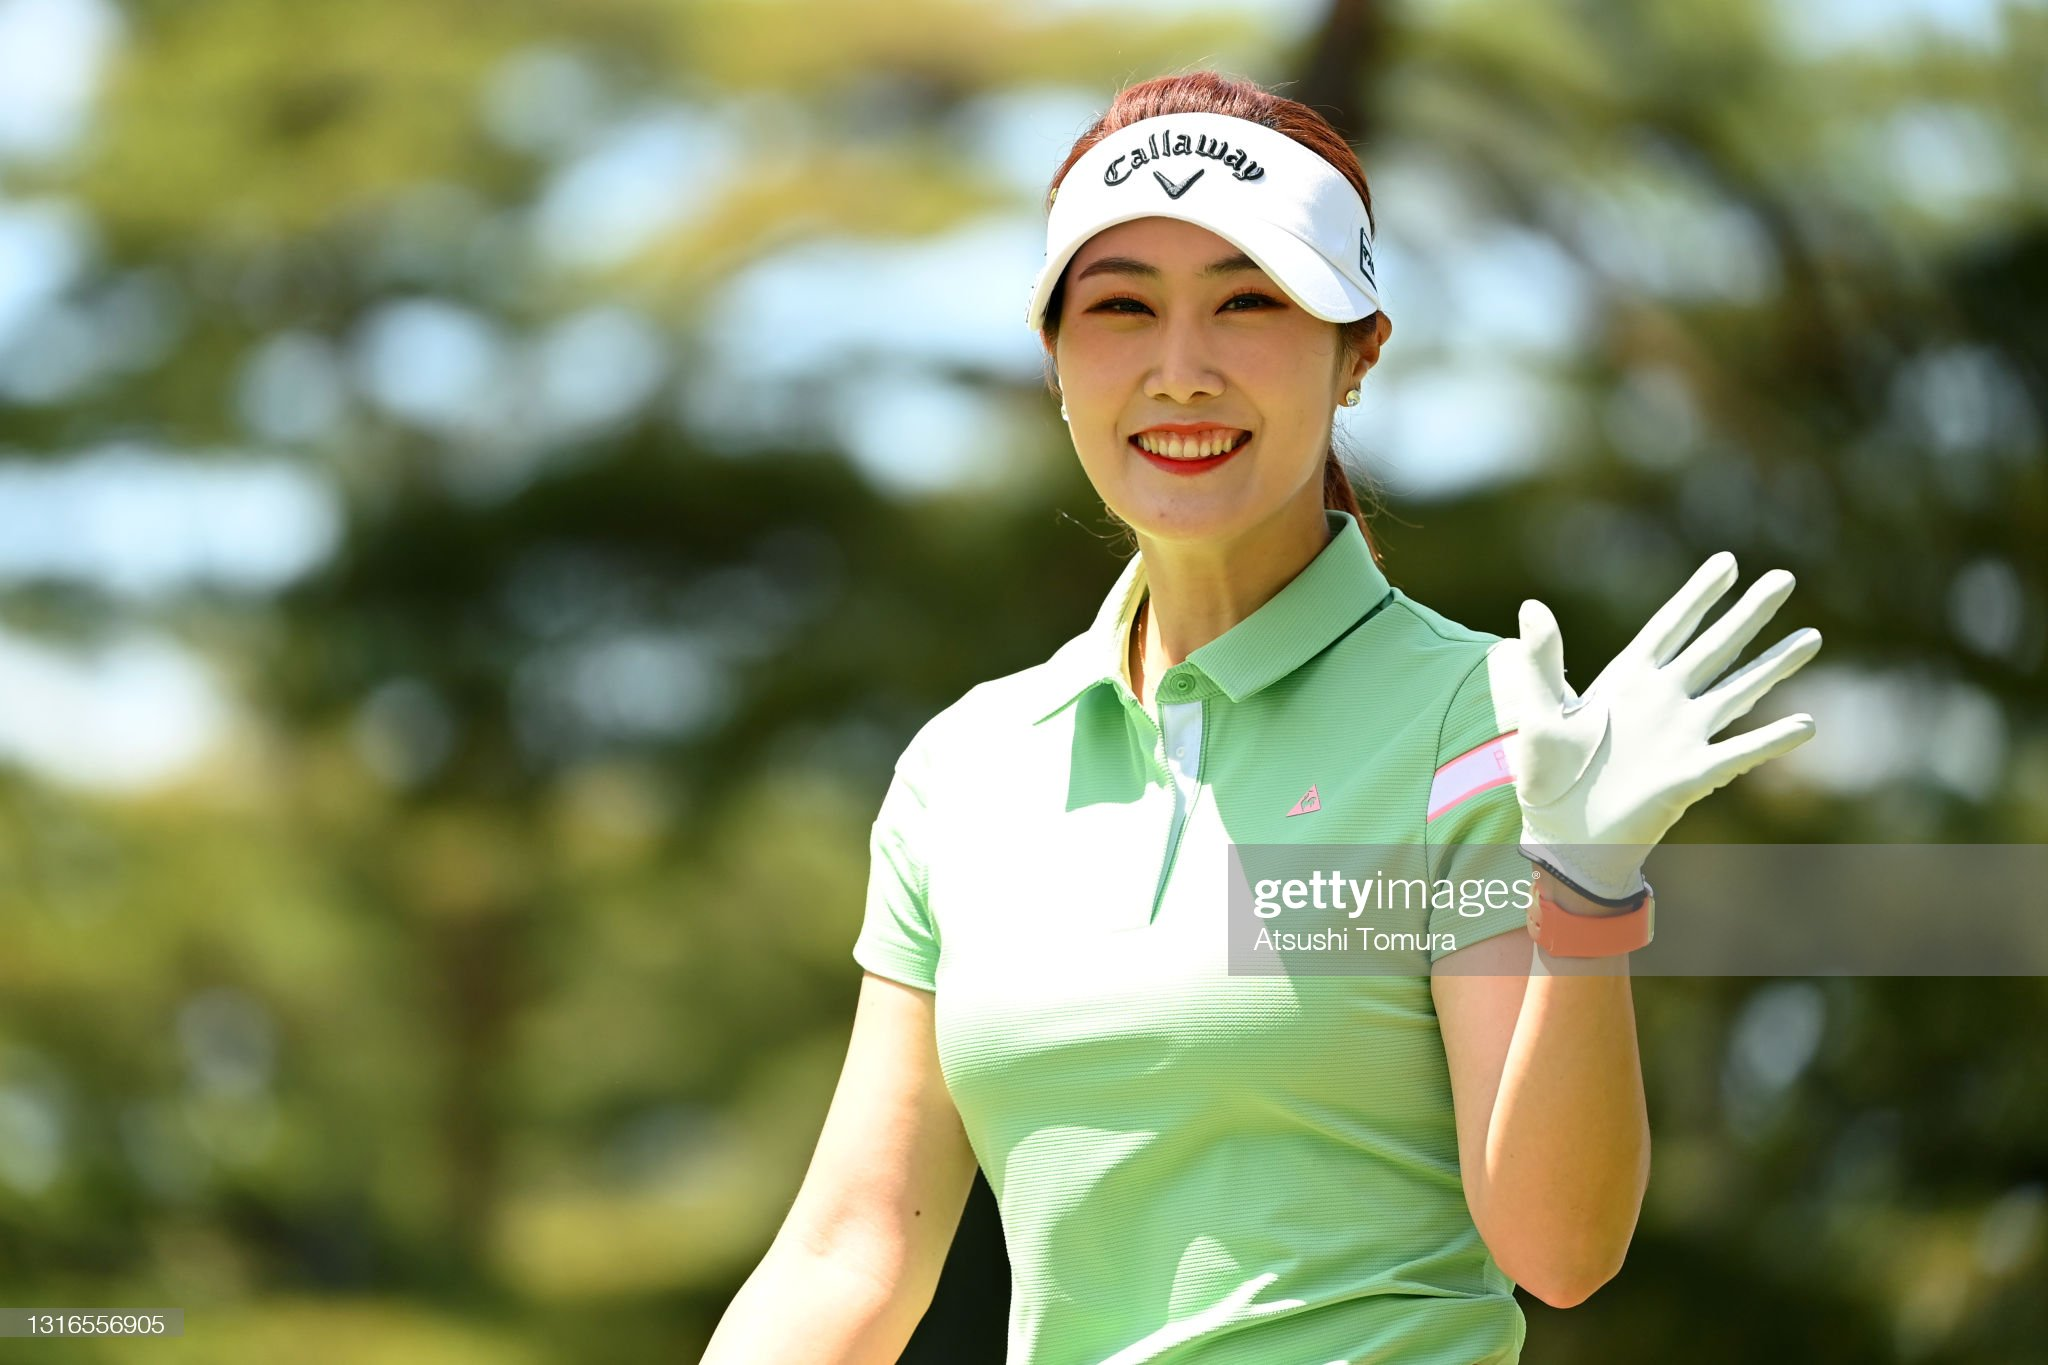 https://media.gettyimages.com/photos/haneul-kim-of-south-korea-waves-on-the-12th-hole-during-the-first-of-picture-id1316556905?s=2048x2048